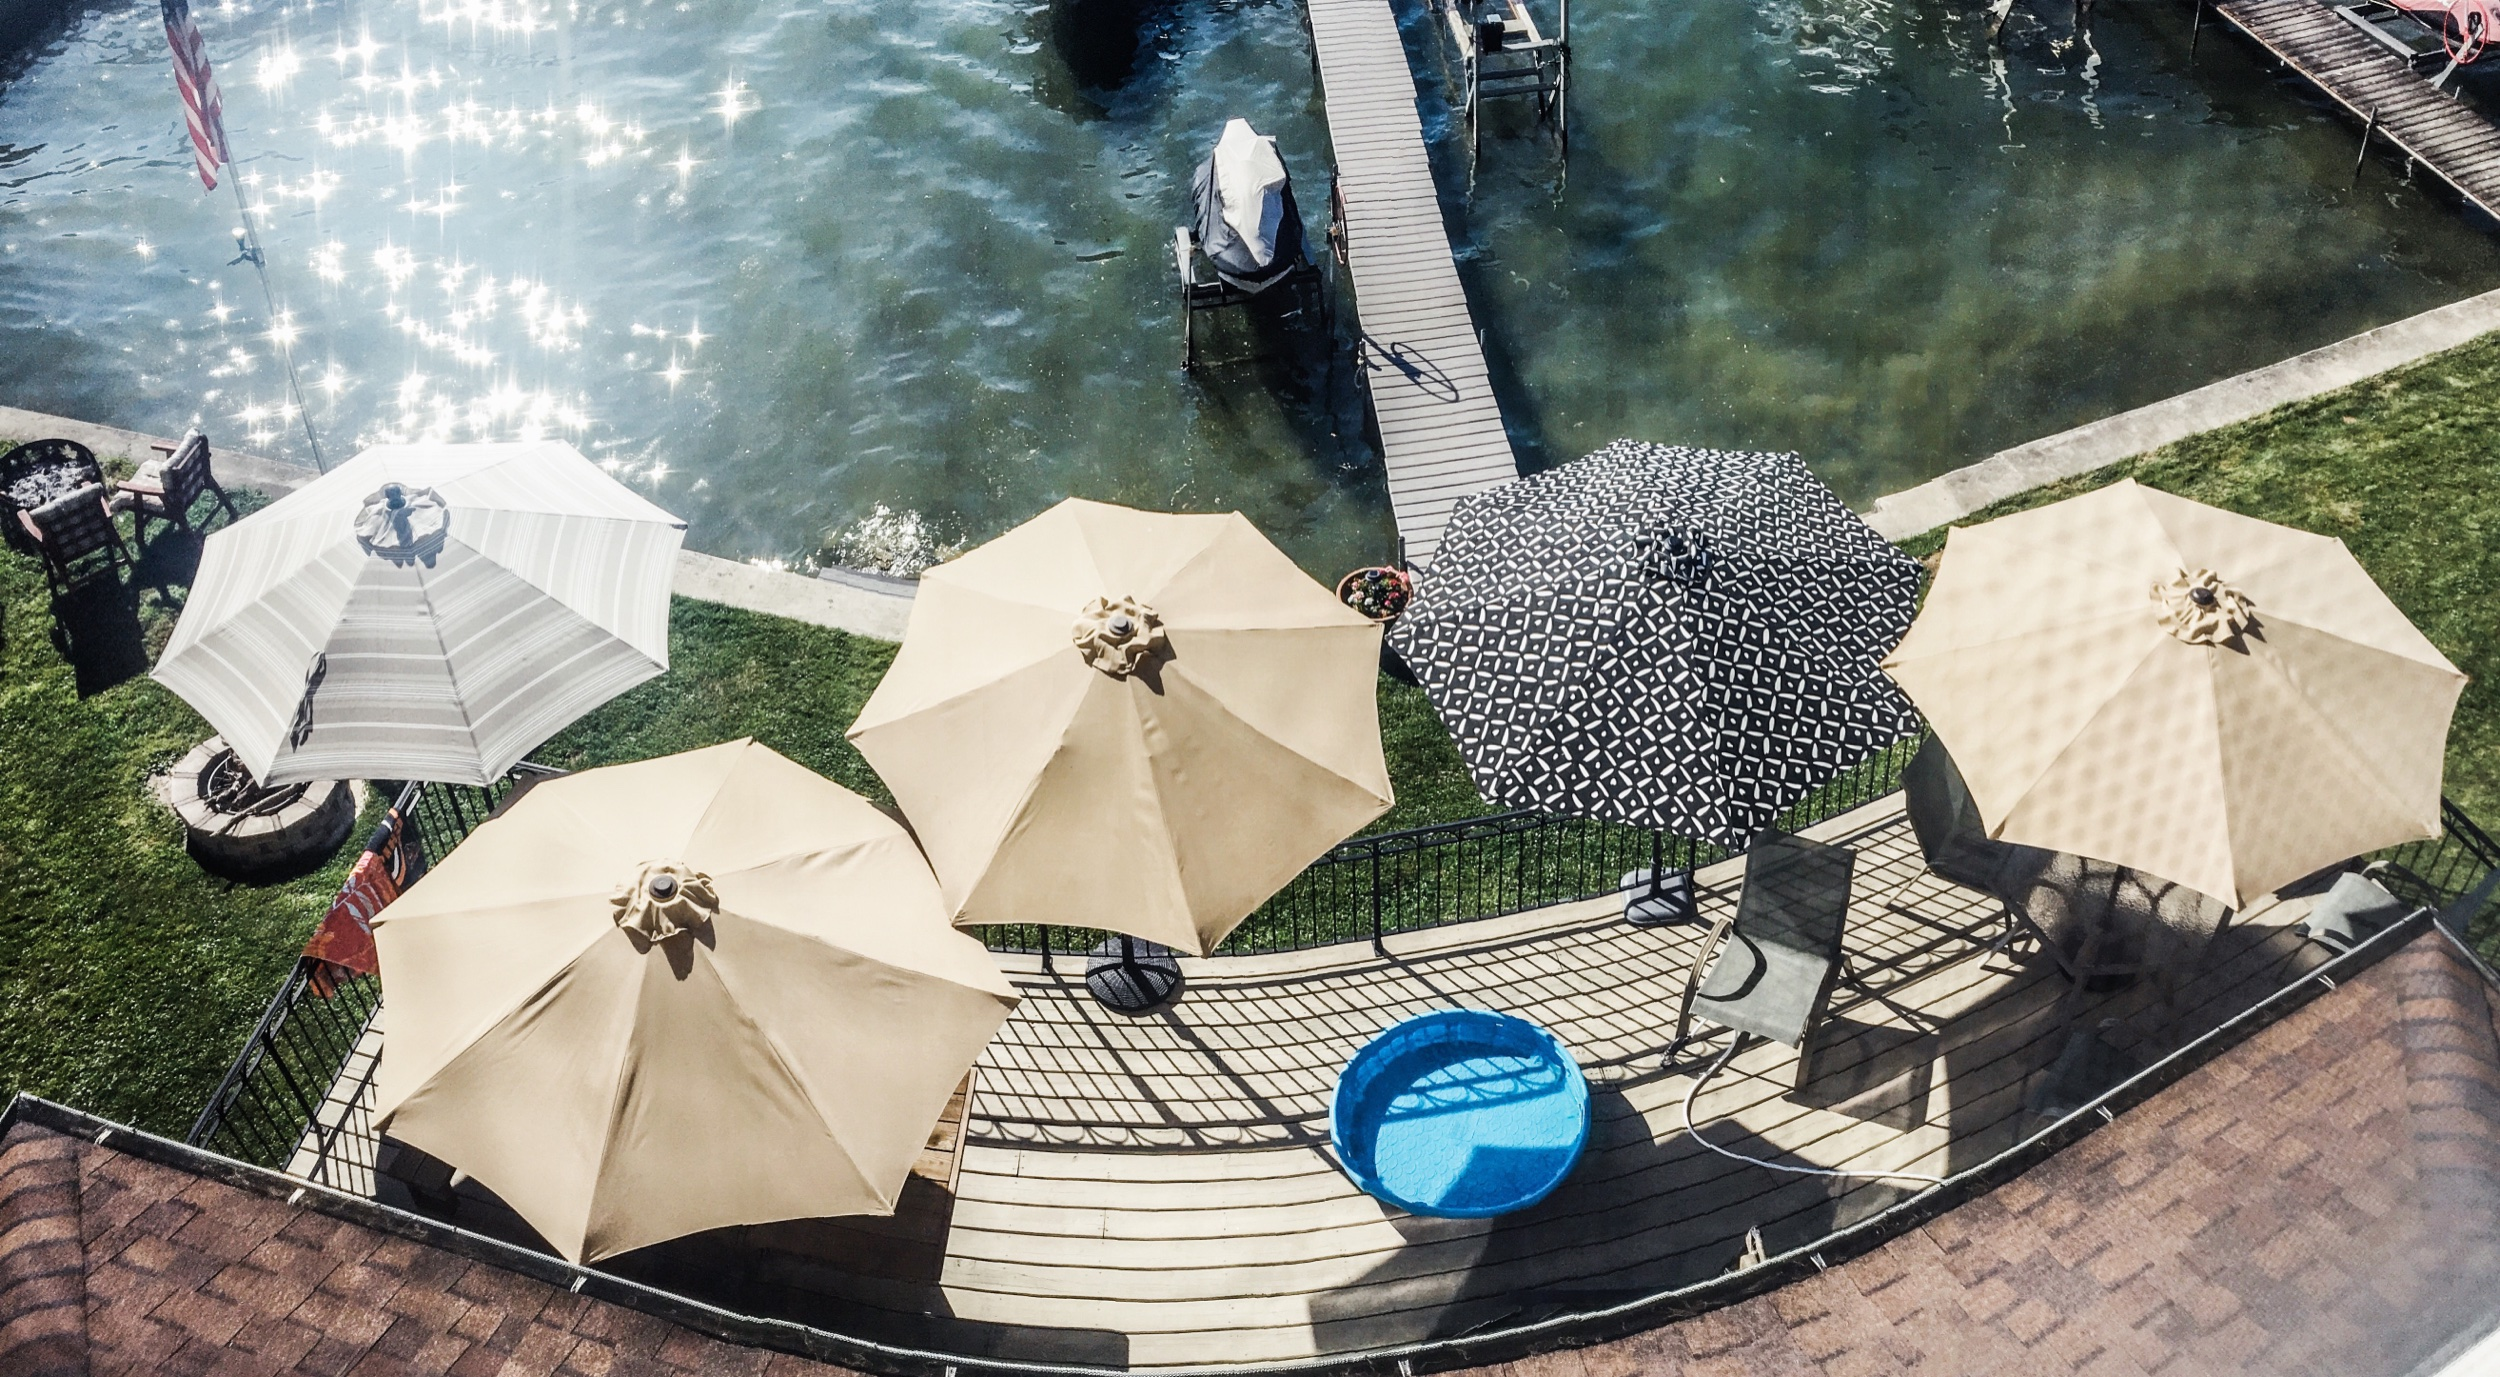 Lake house umbrella ideas. How to cover a lake house deck with shade. How to get shade to a full sun deck. How to get lake house deck shade. Best umbrellas for lake house deck.